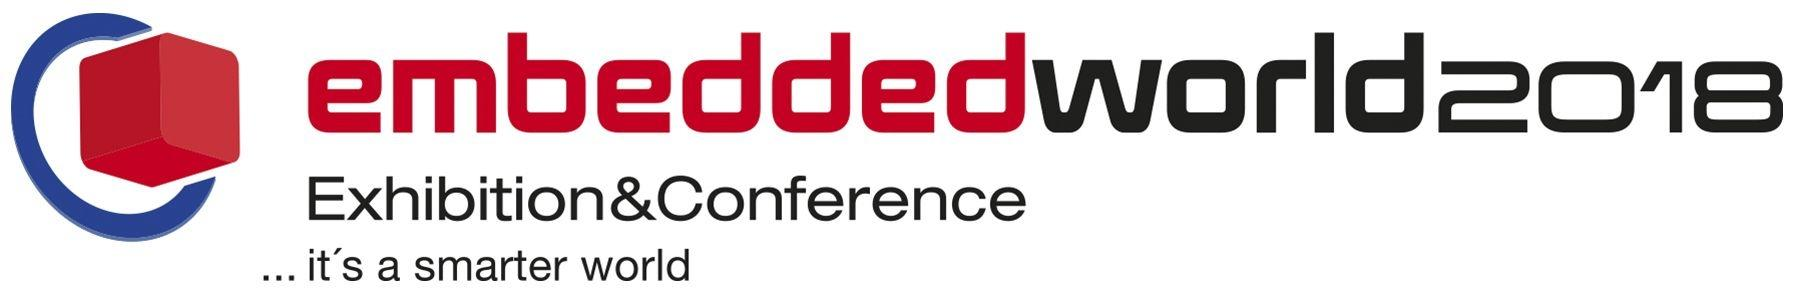 embedded world 2018 Logo (schmal)